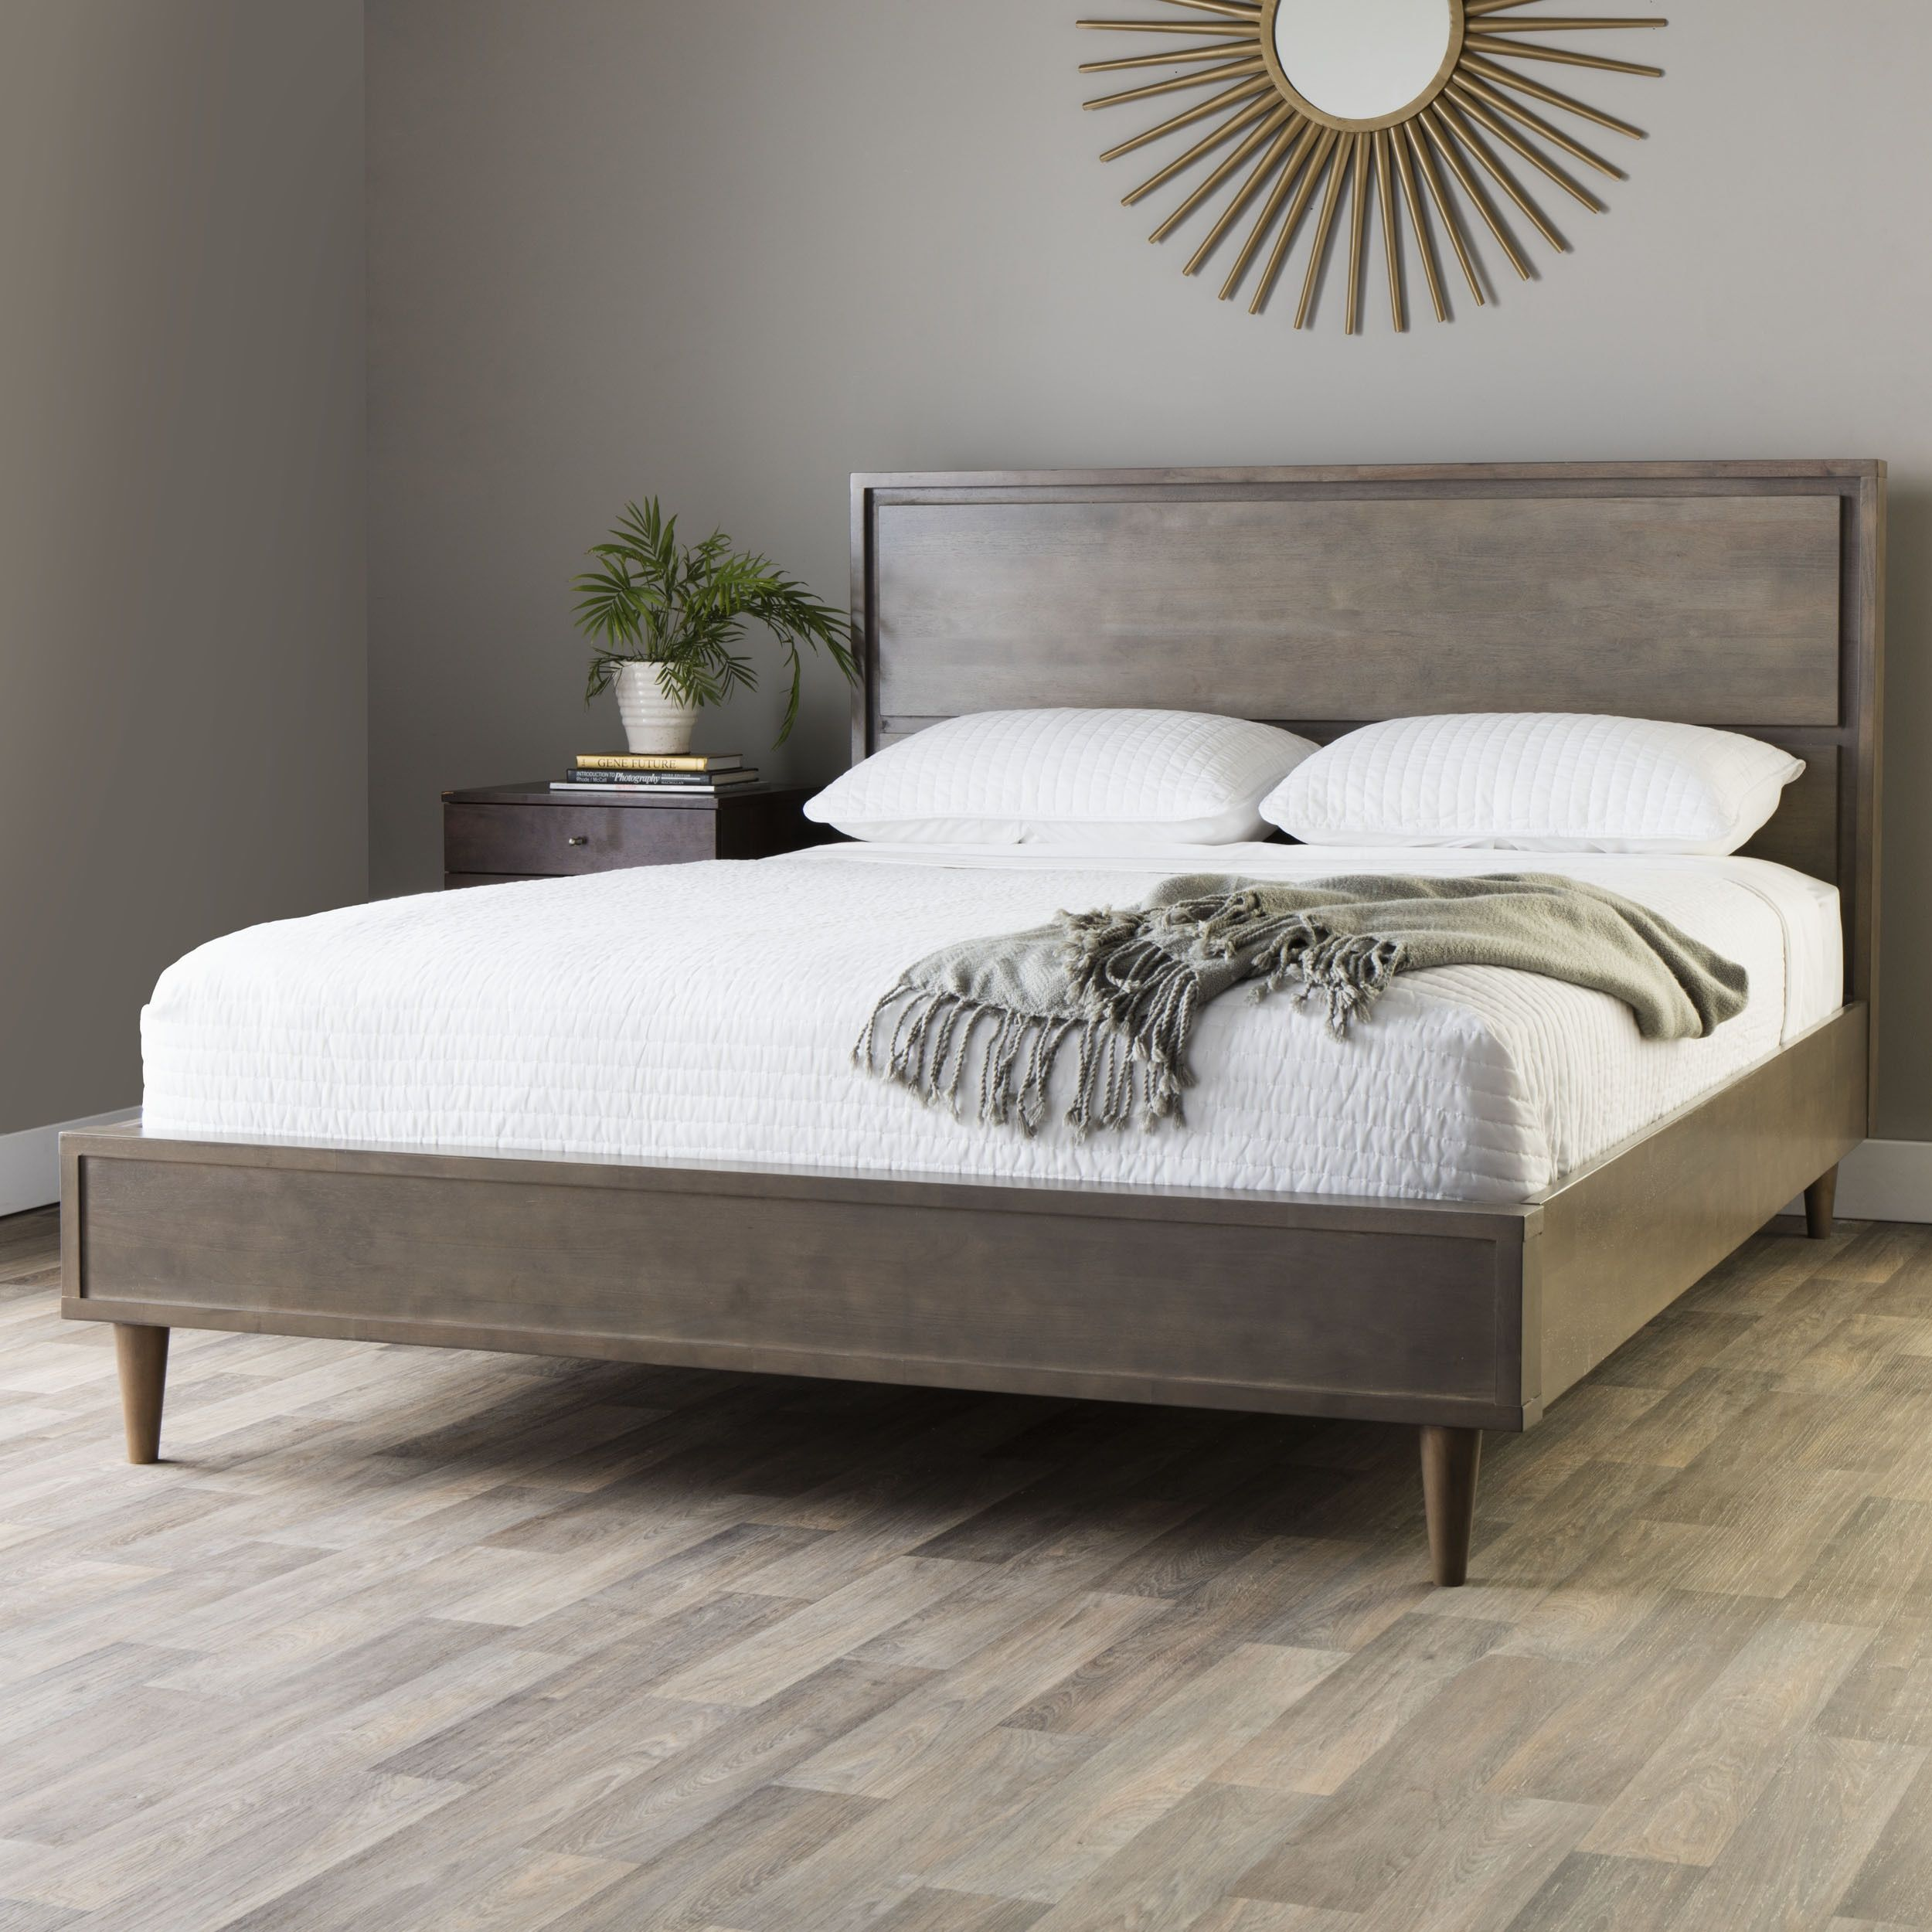 Scandinavia queen size solid bamboo wood platform bed 12924301 - Grey Wood Beds Transform The Look Of Your Bedroom By Updating Possibly The Most